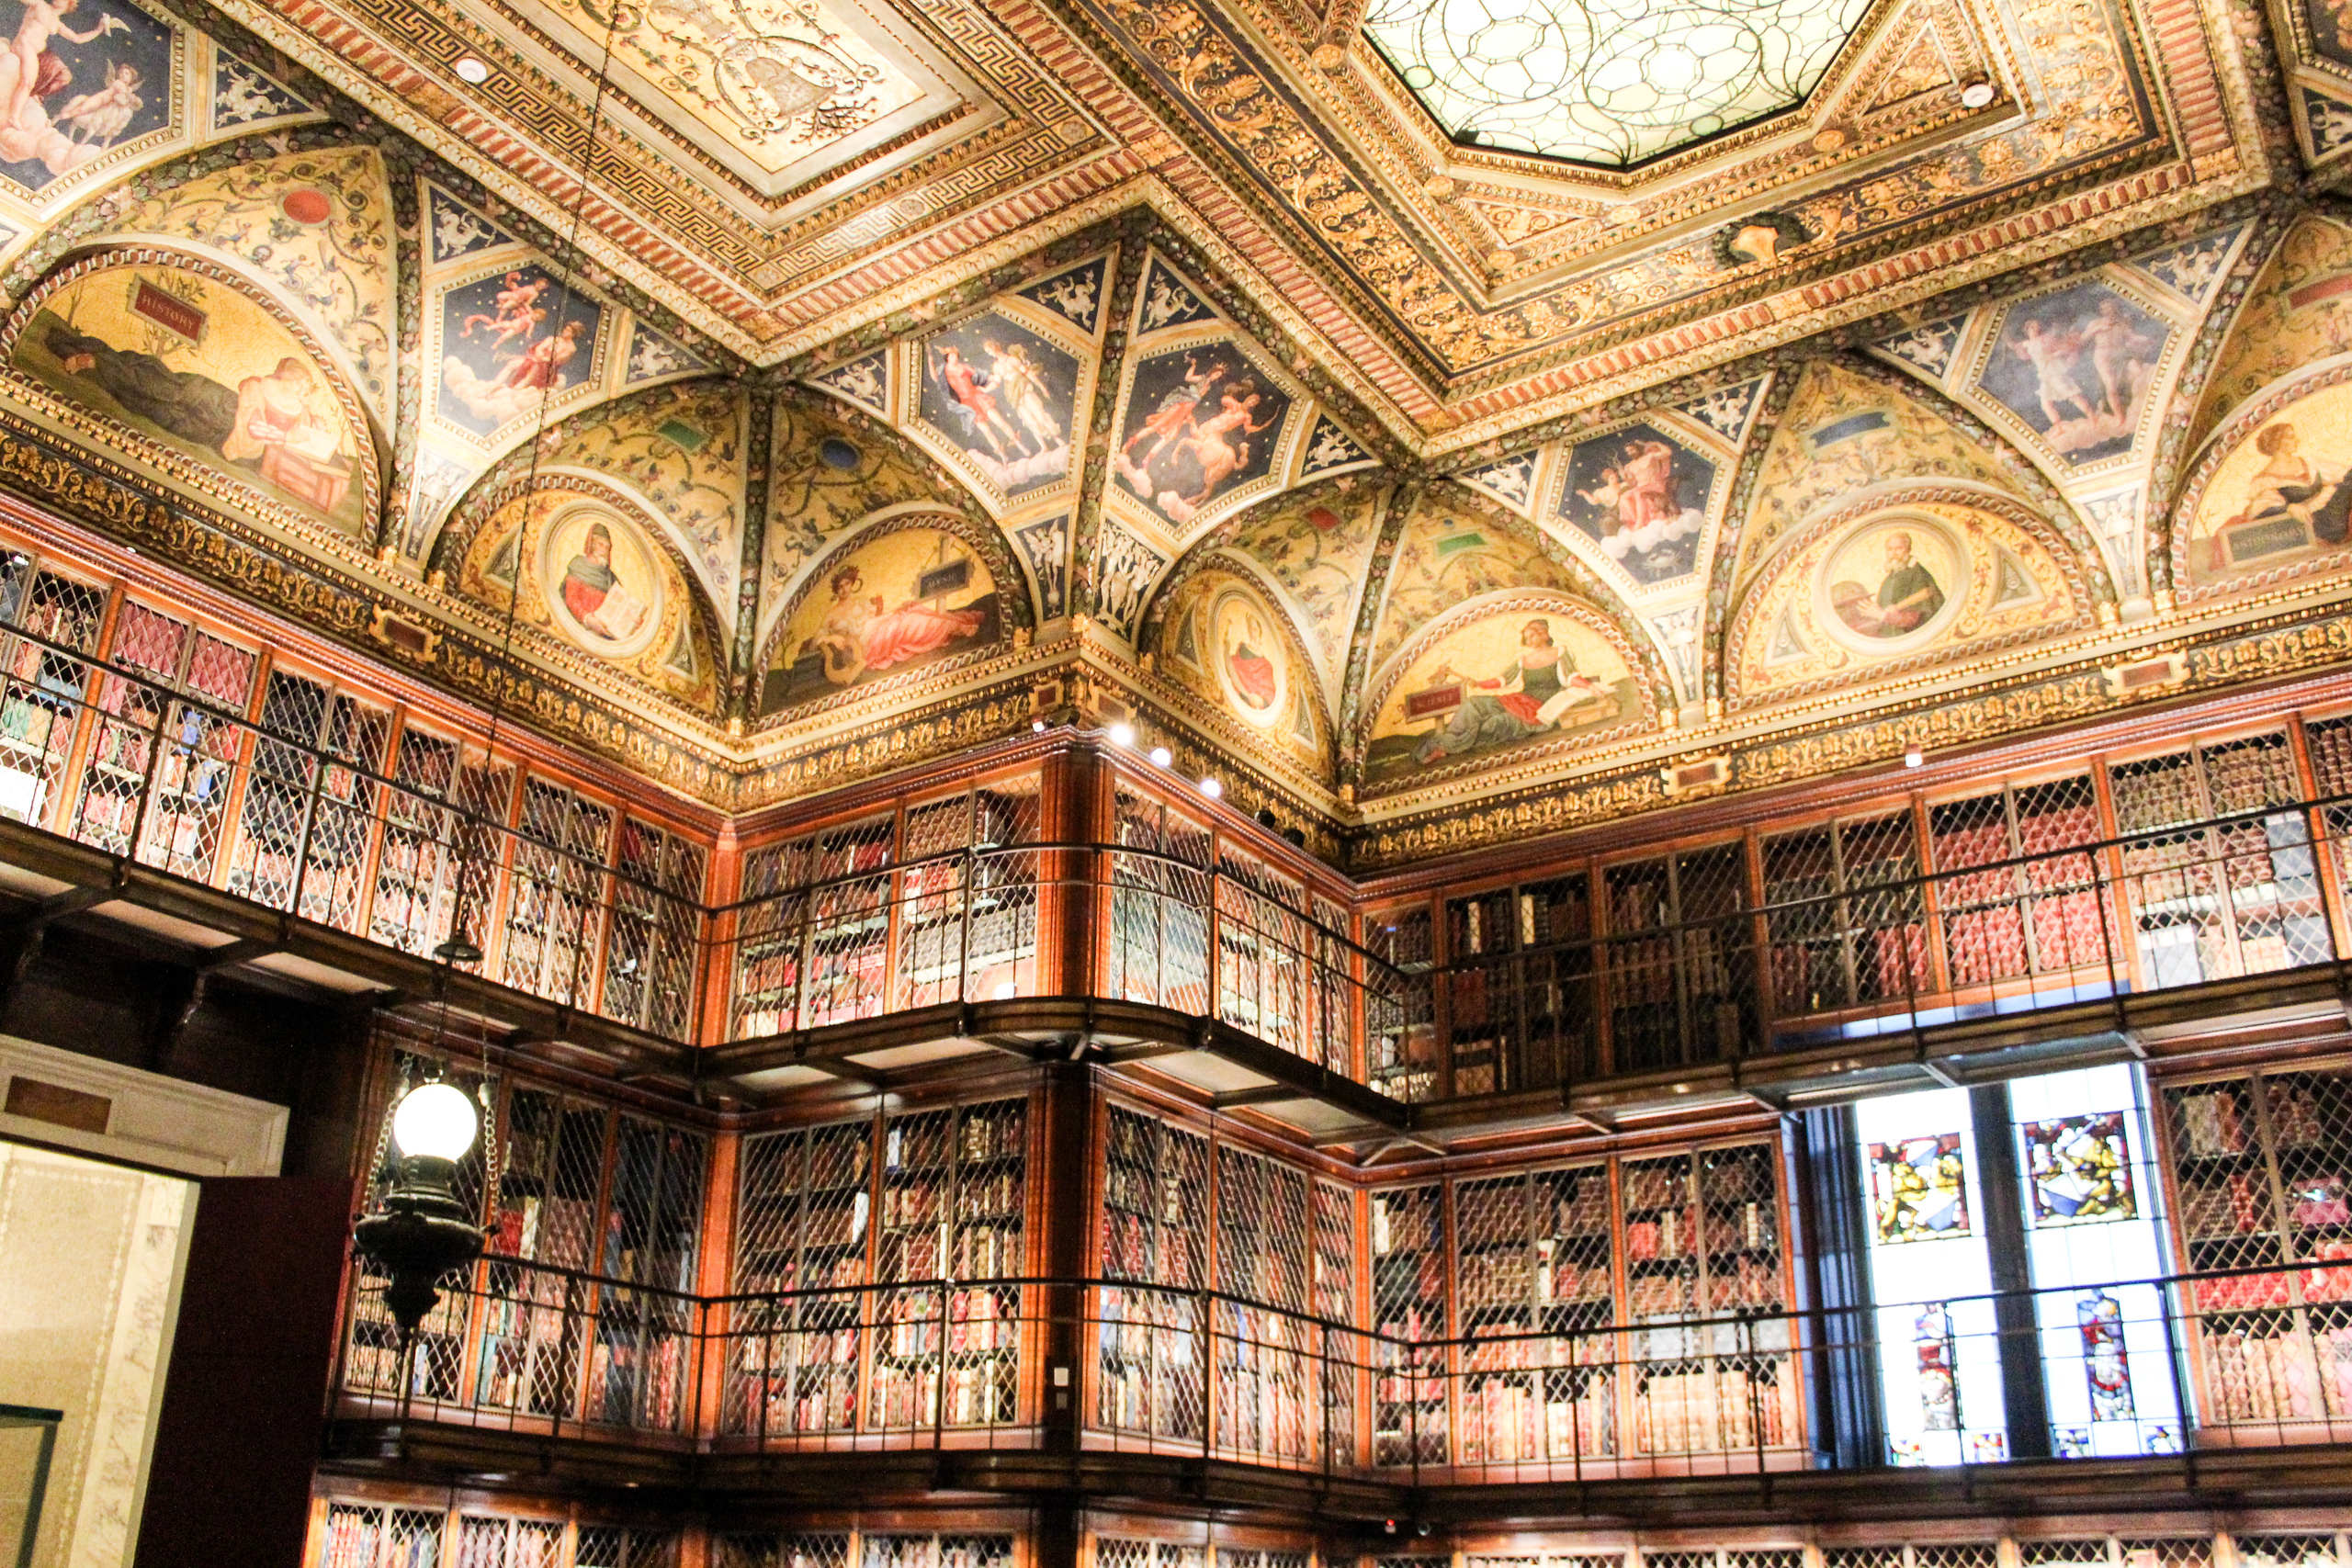 one way for how to recover from a breakup is going to a new museum like the morgan library